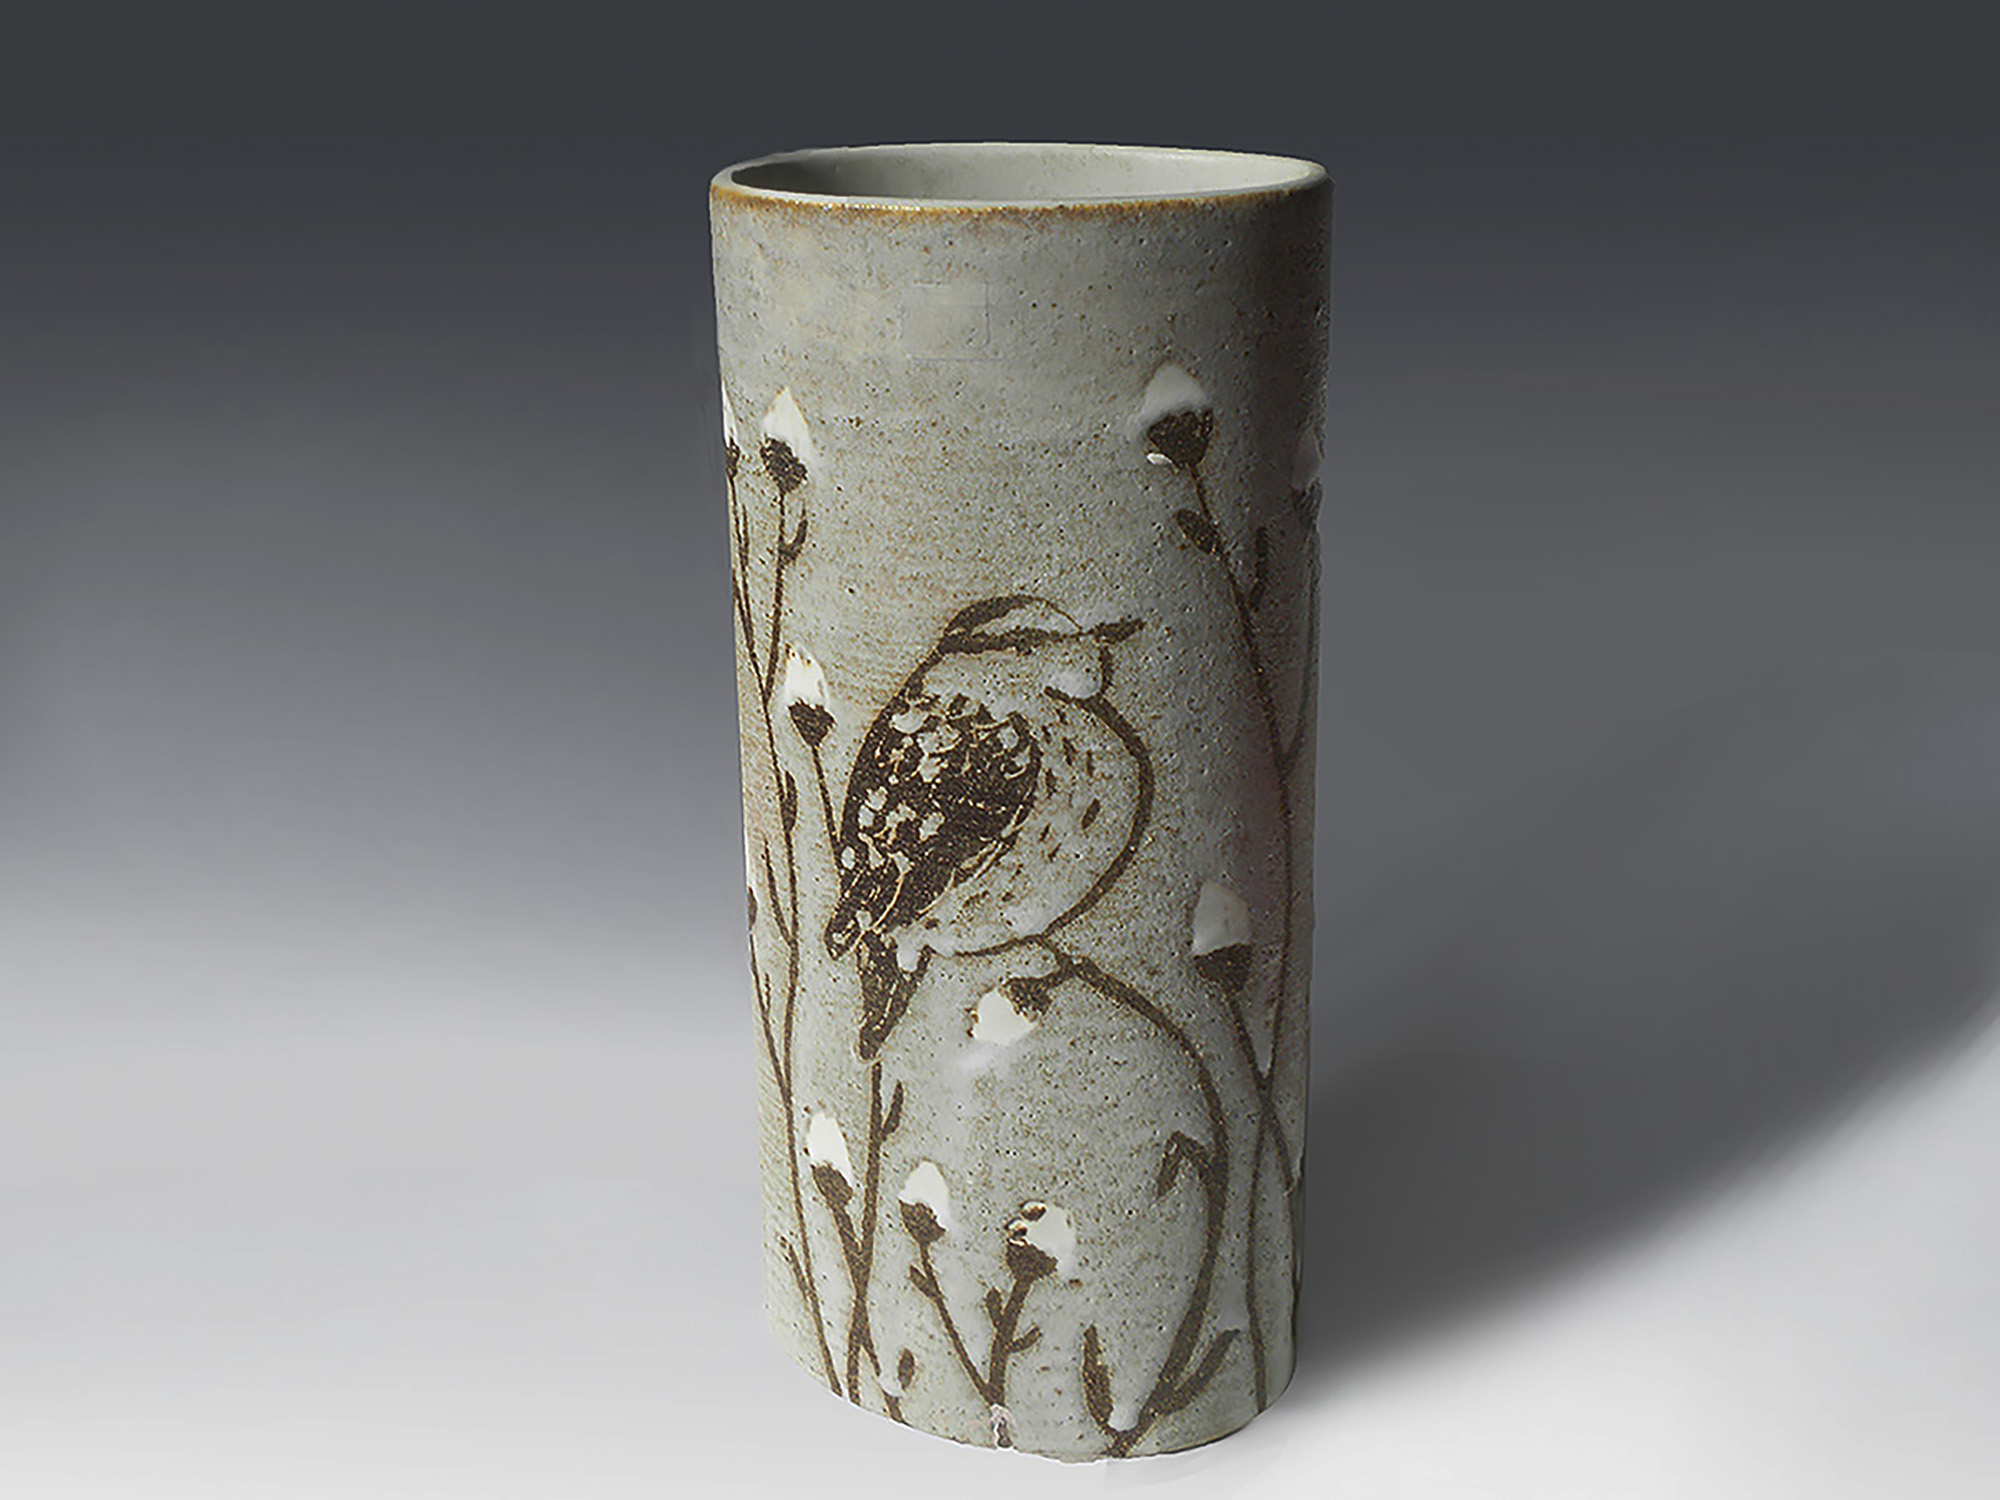 Tall Oval Cylinder Vase with Bird in a Bush